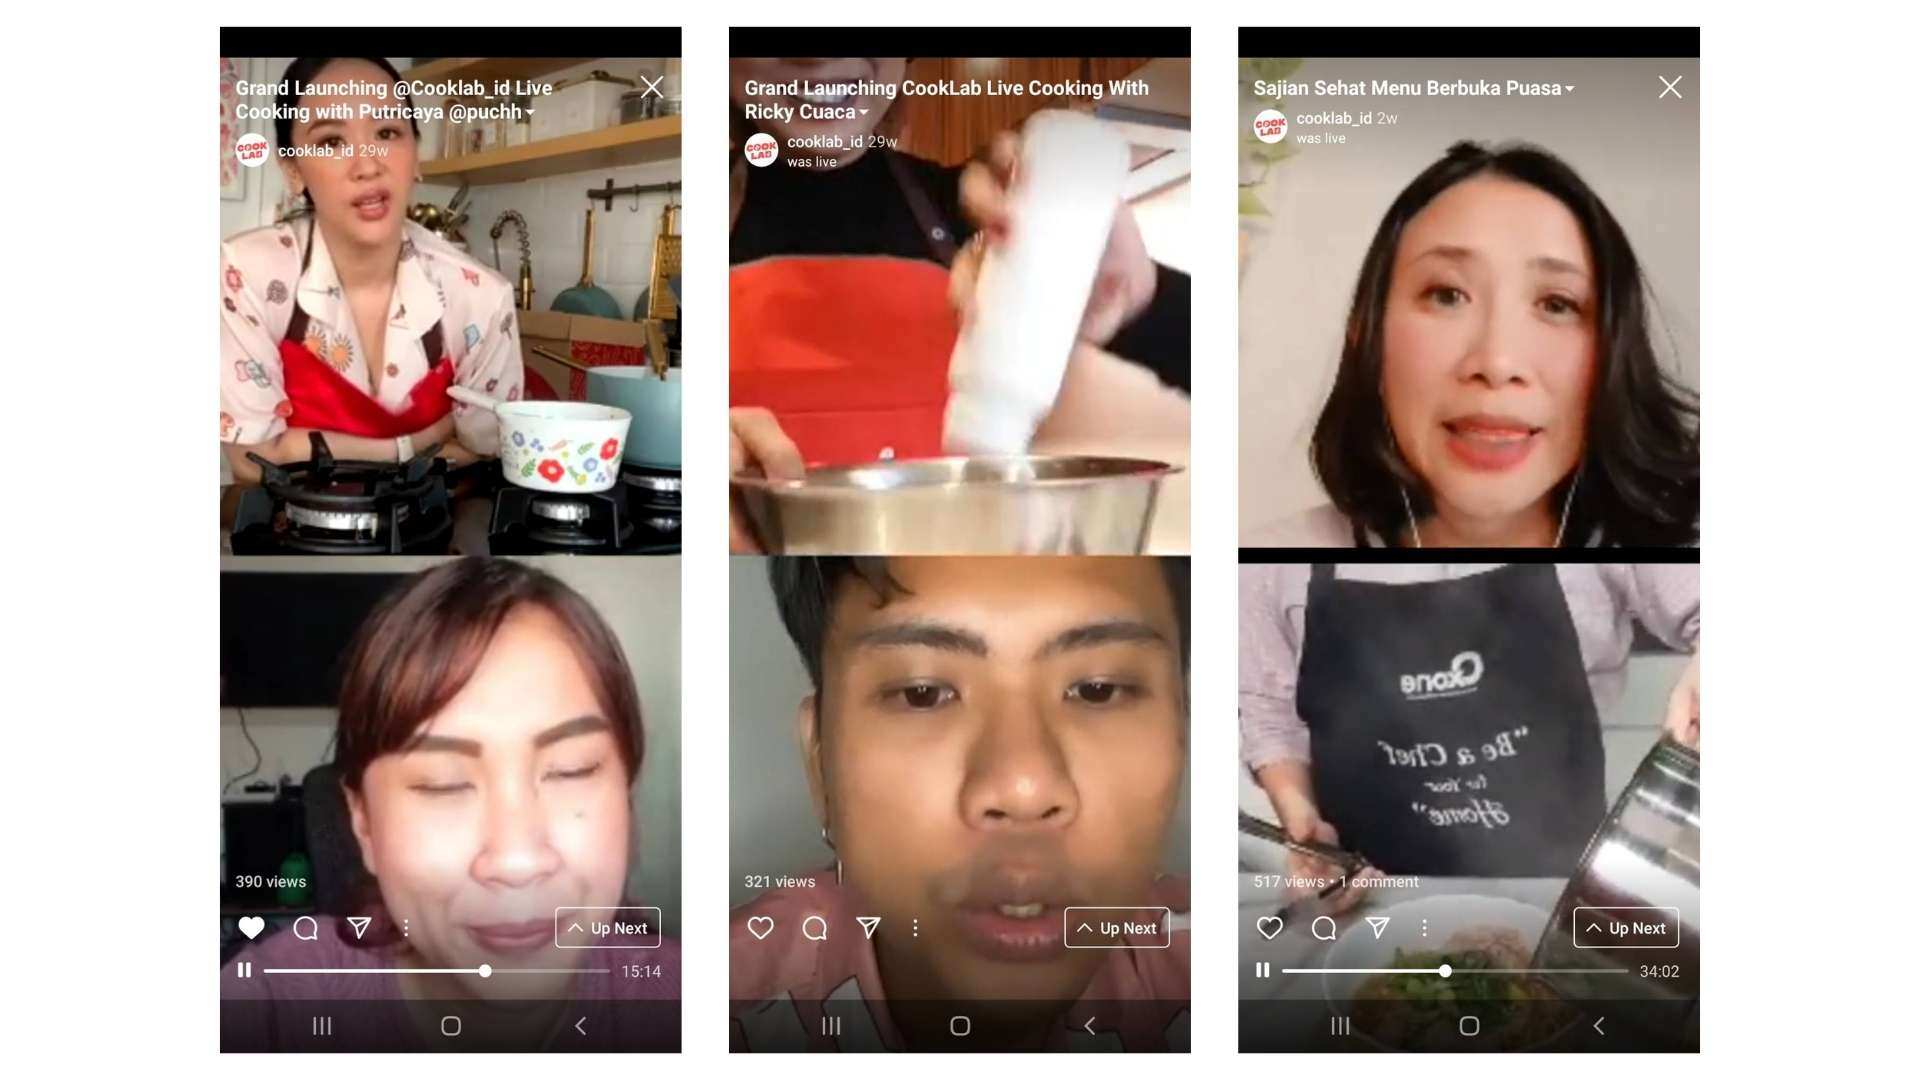 live-streaming-cooklab